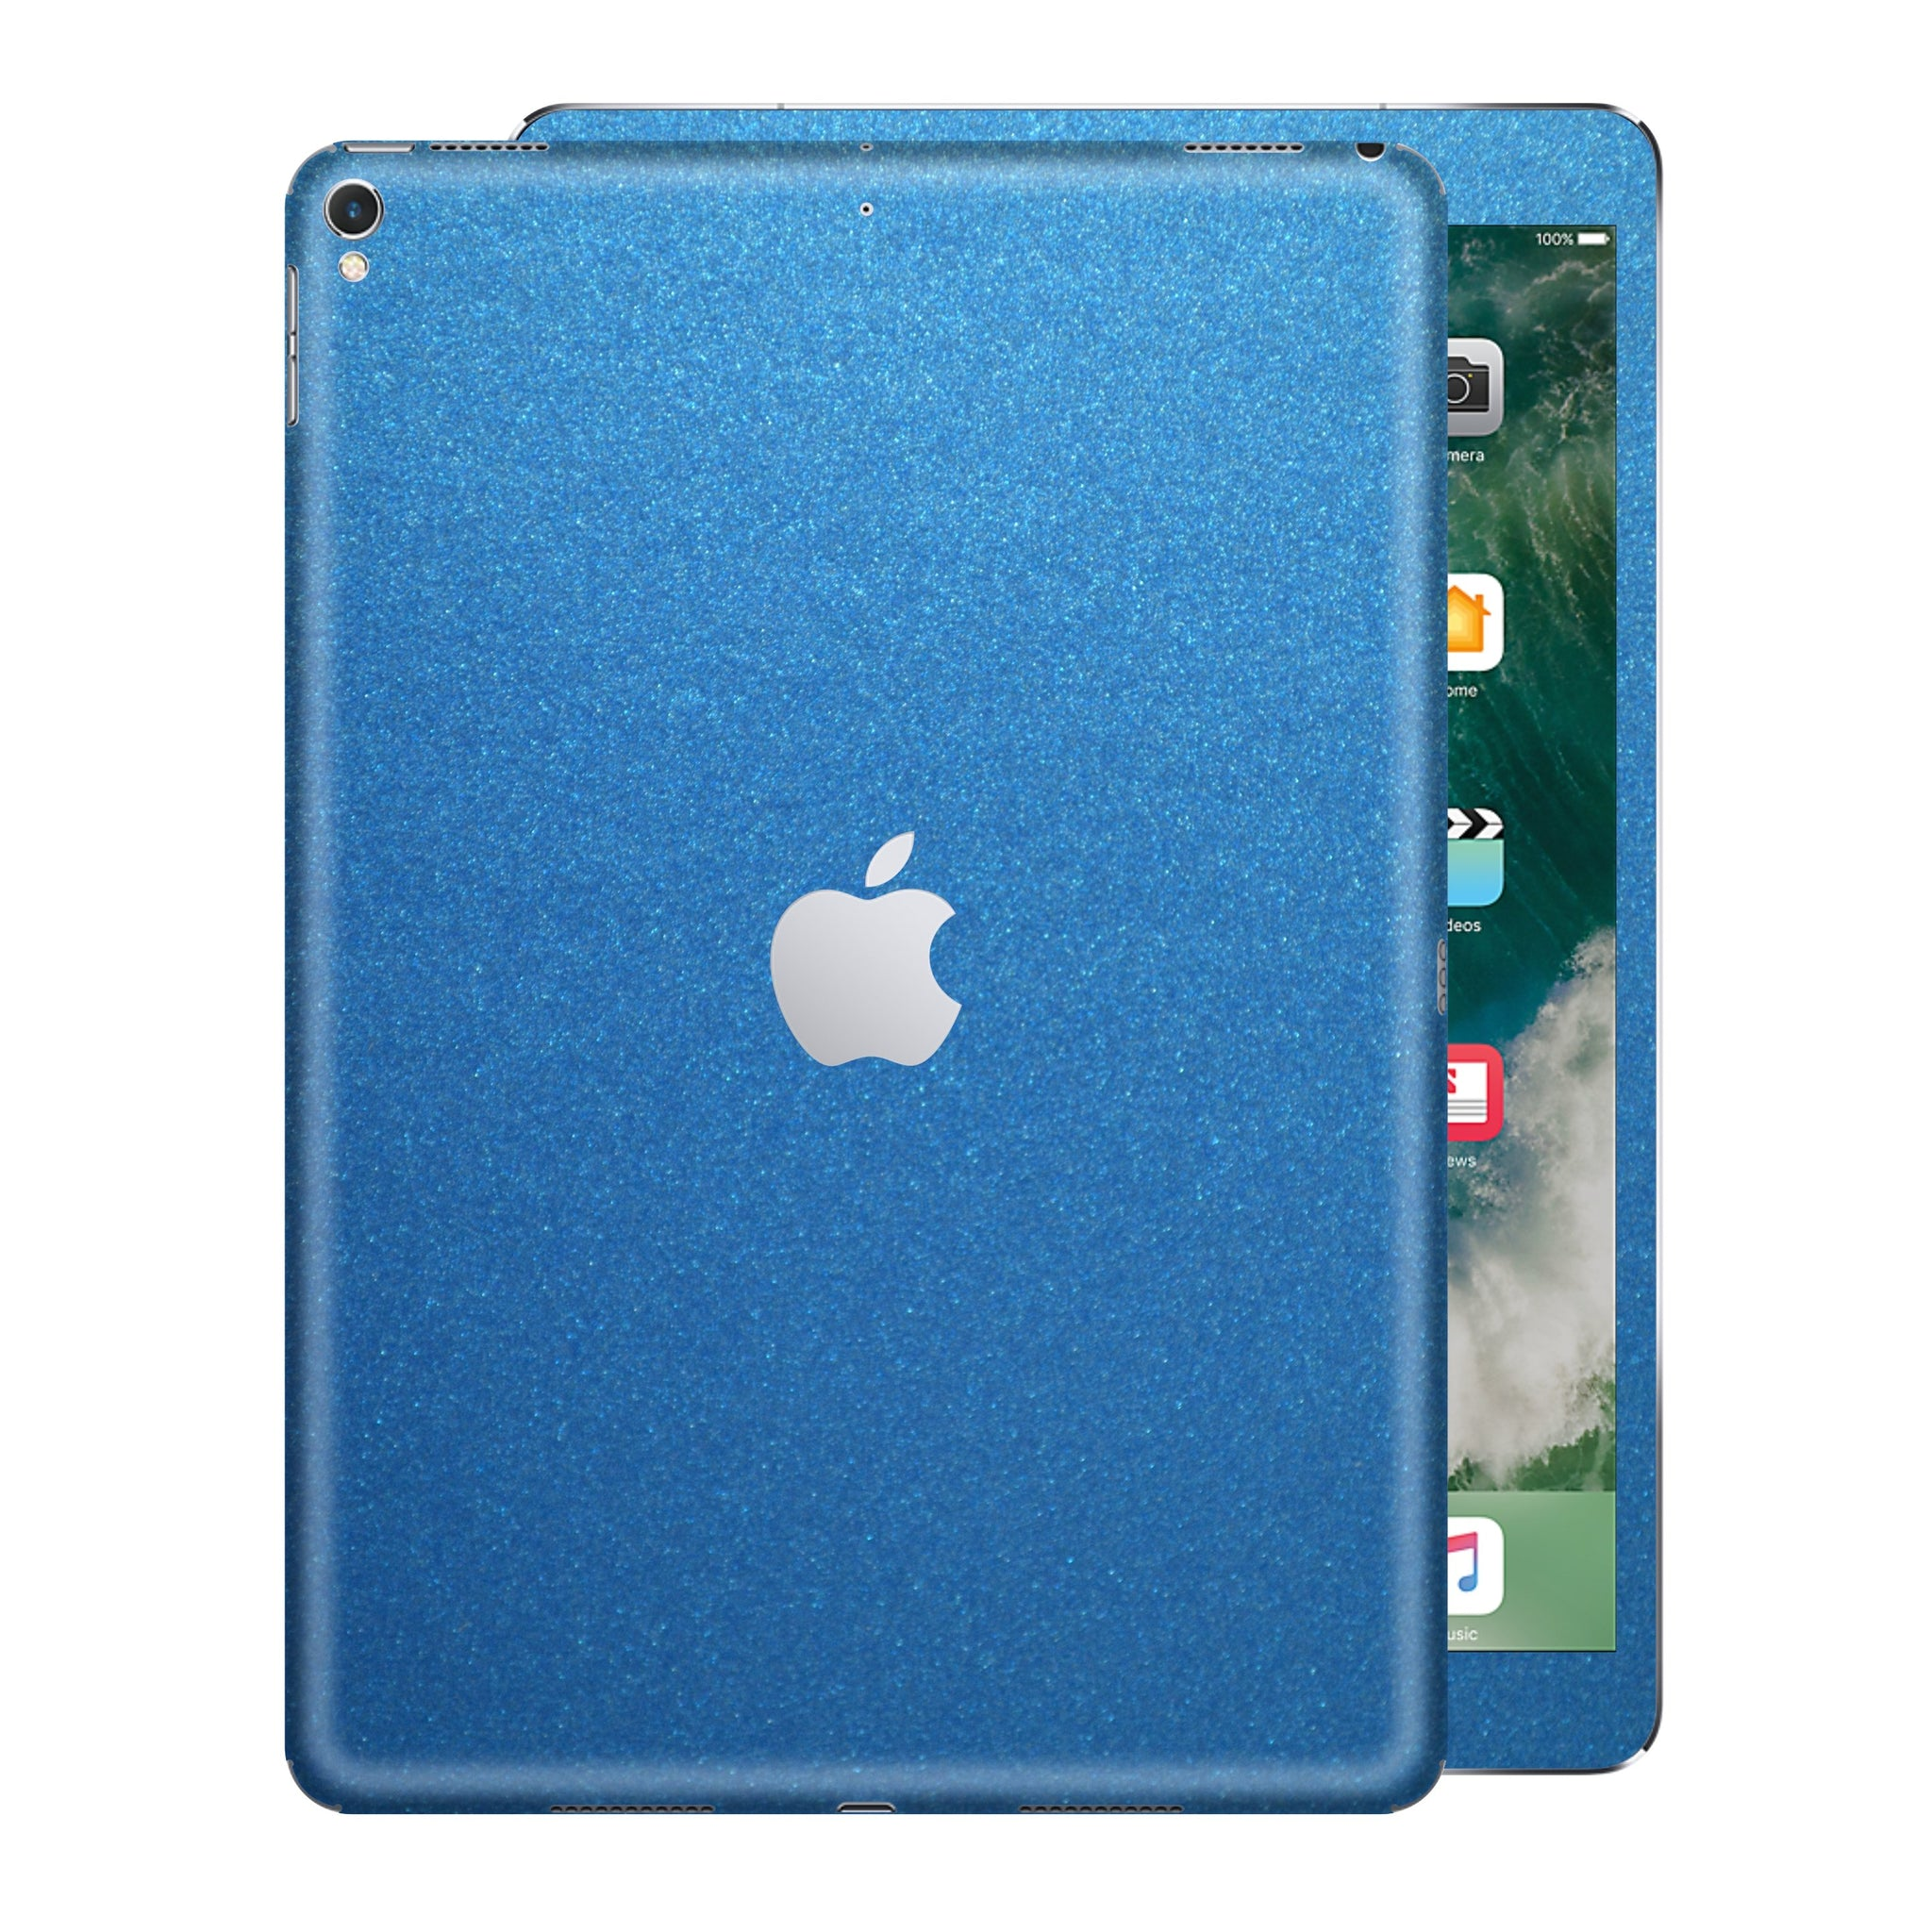 iPad PRO 12.9 inch 2017 Glossy Azure Blue Metallic Skin Wrap Sticker Decal Cover Protector by EasySkinz